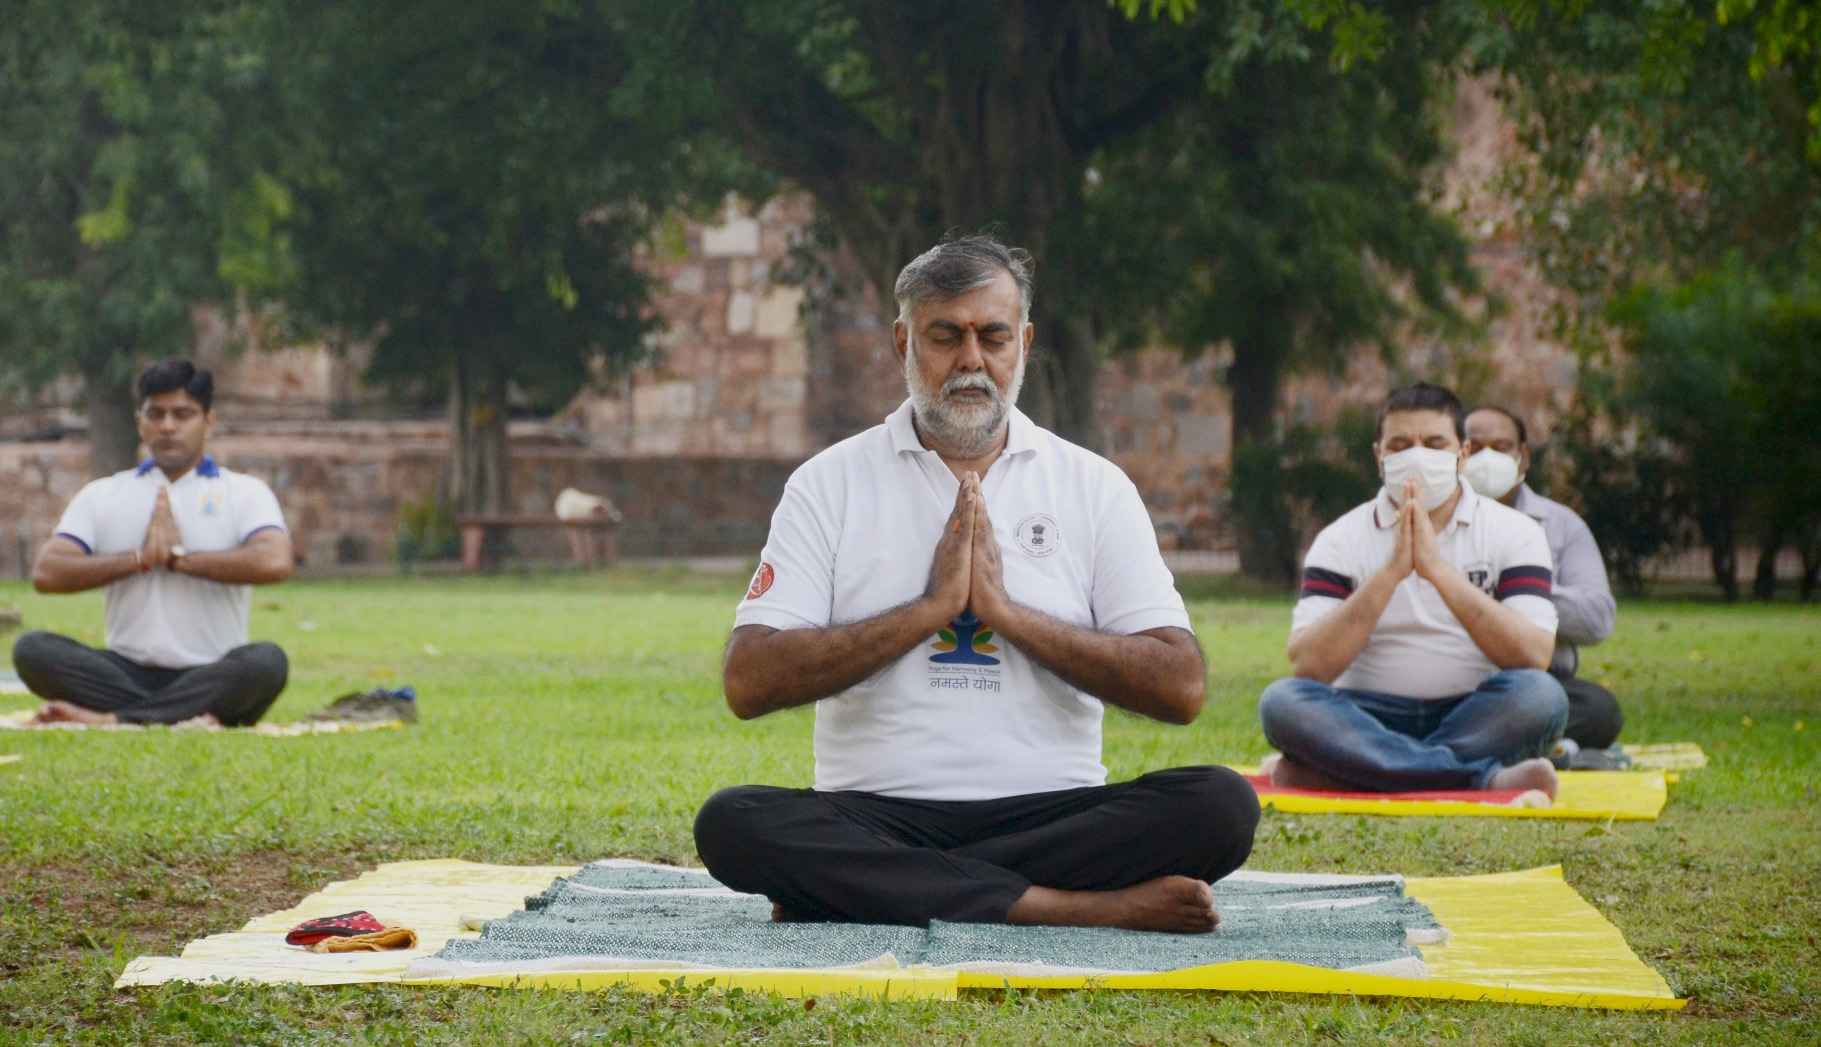 The Minister of State for Culture and Tourism (Independent Charge), Shri Prahlad Singh Patel performing Yoga, on the occasion of the 6th International Day of Yoga 2020, at Purana Qila, in New Delhi on June 21, 2020.